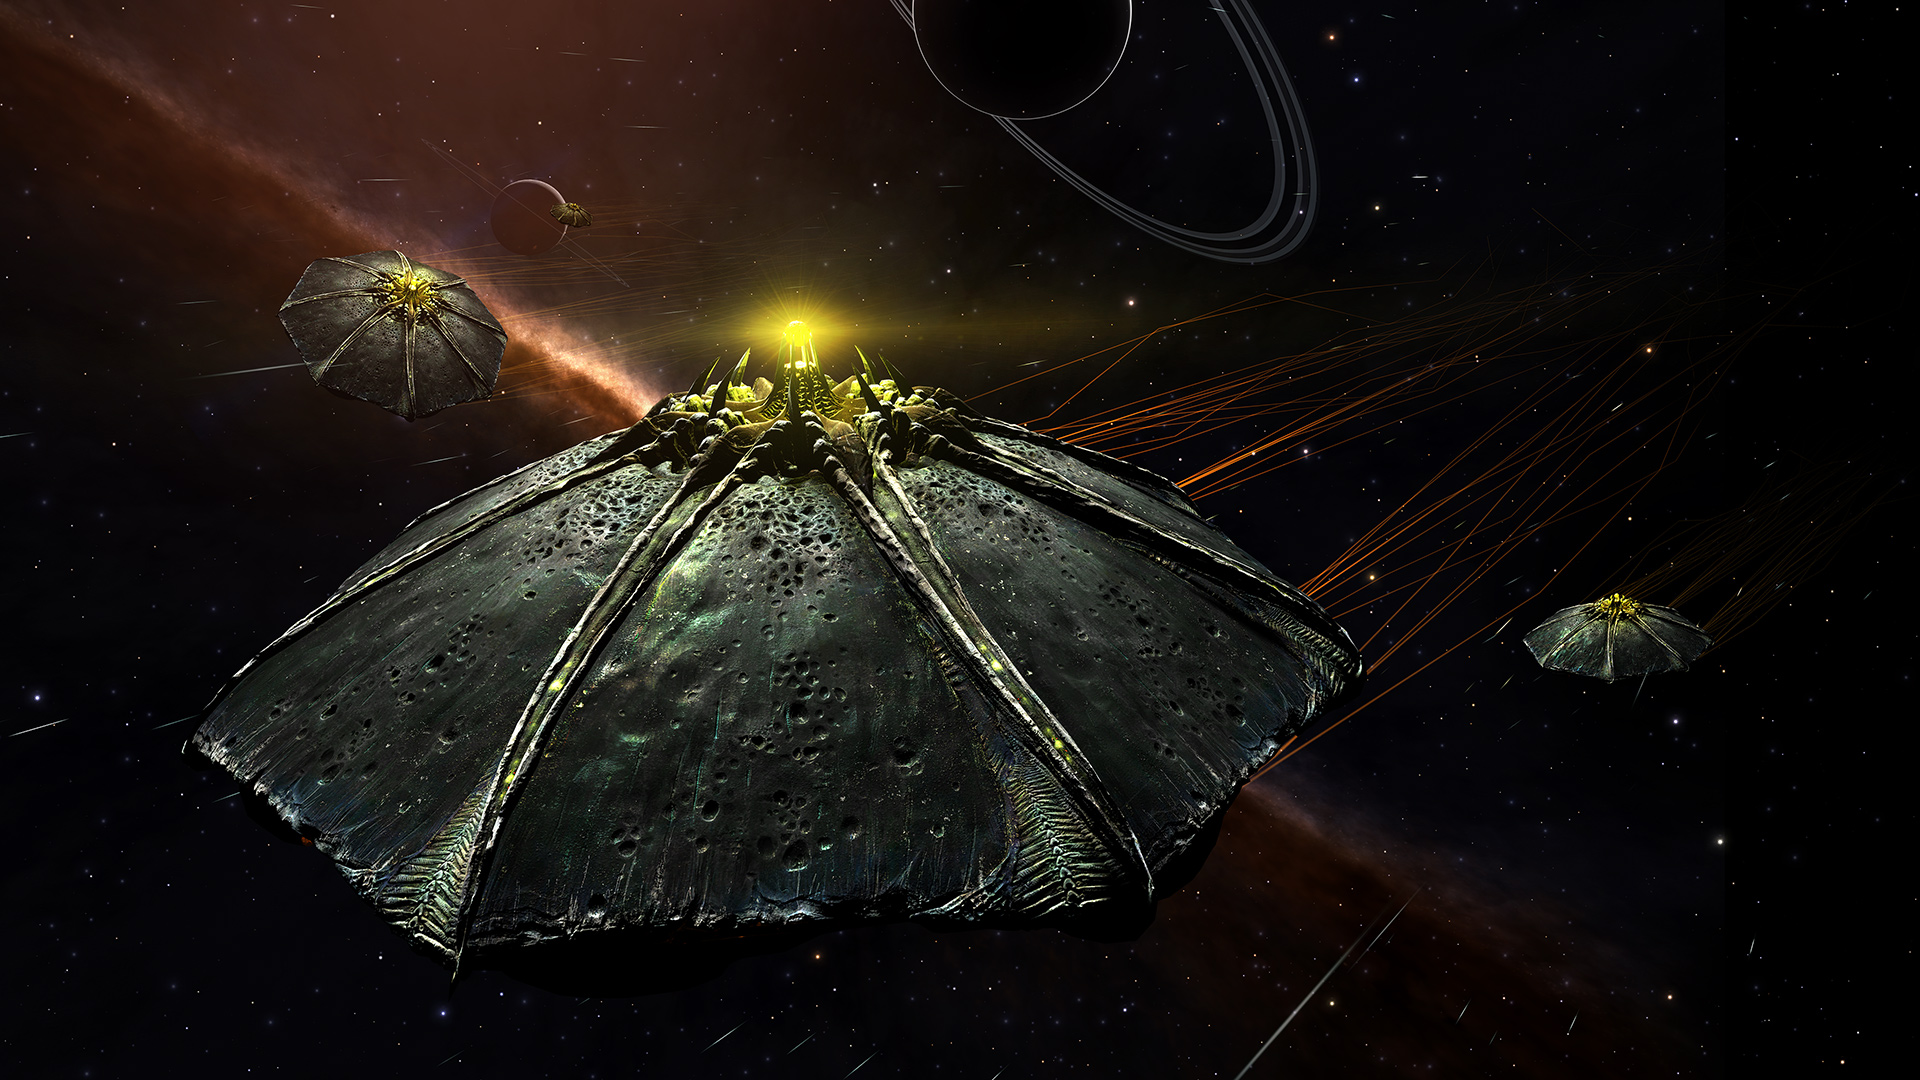 The New Season Of Elite Dangerous Starts This Month With